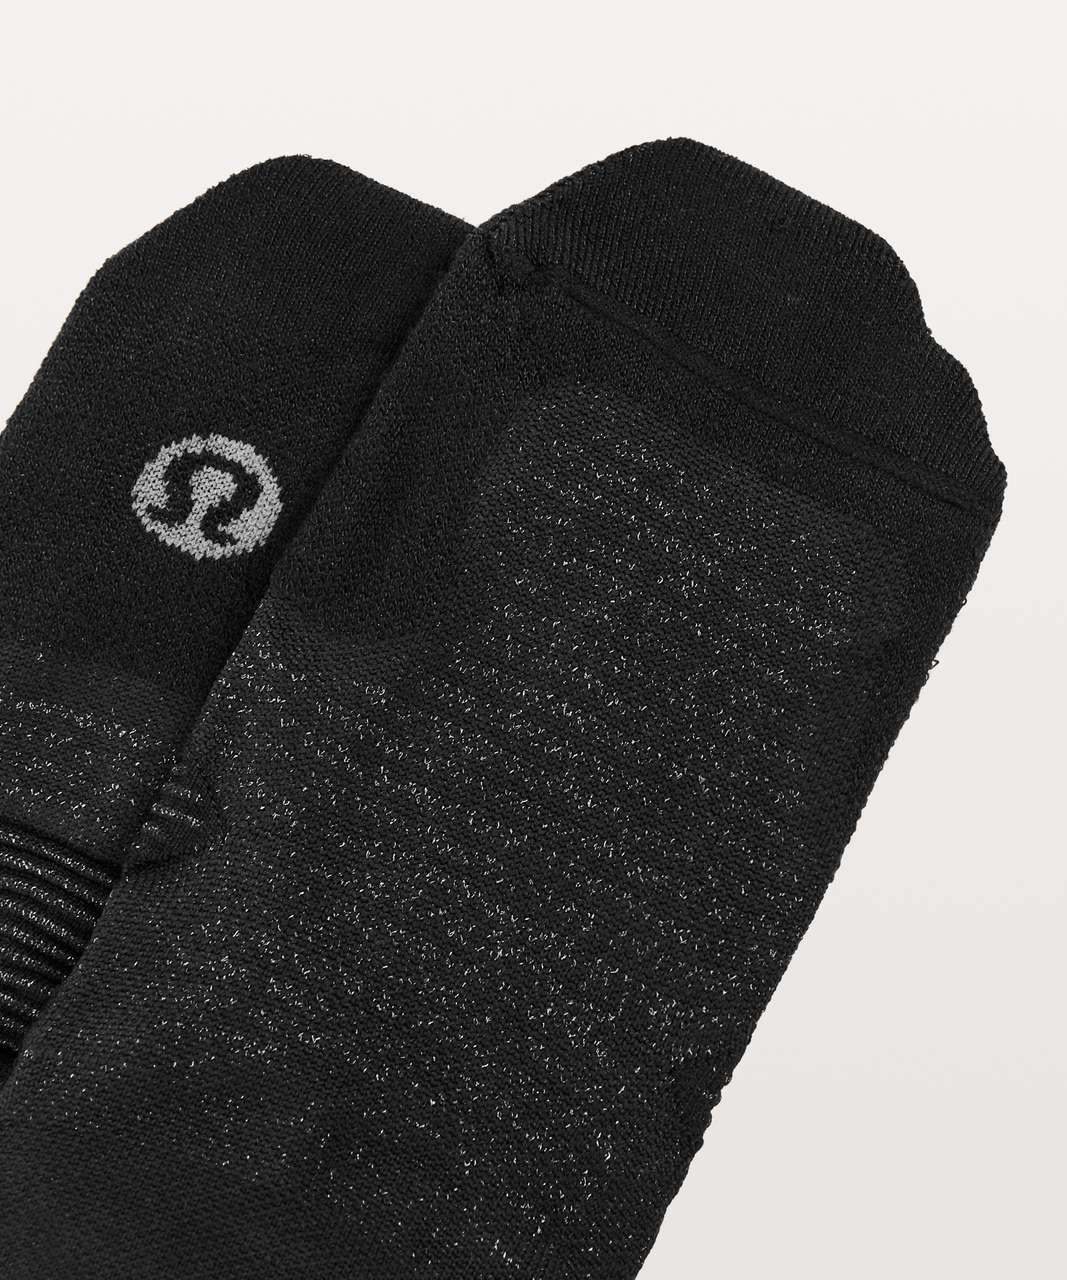 Lululemon Speed Sock *Silver - Black (First Release)